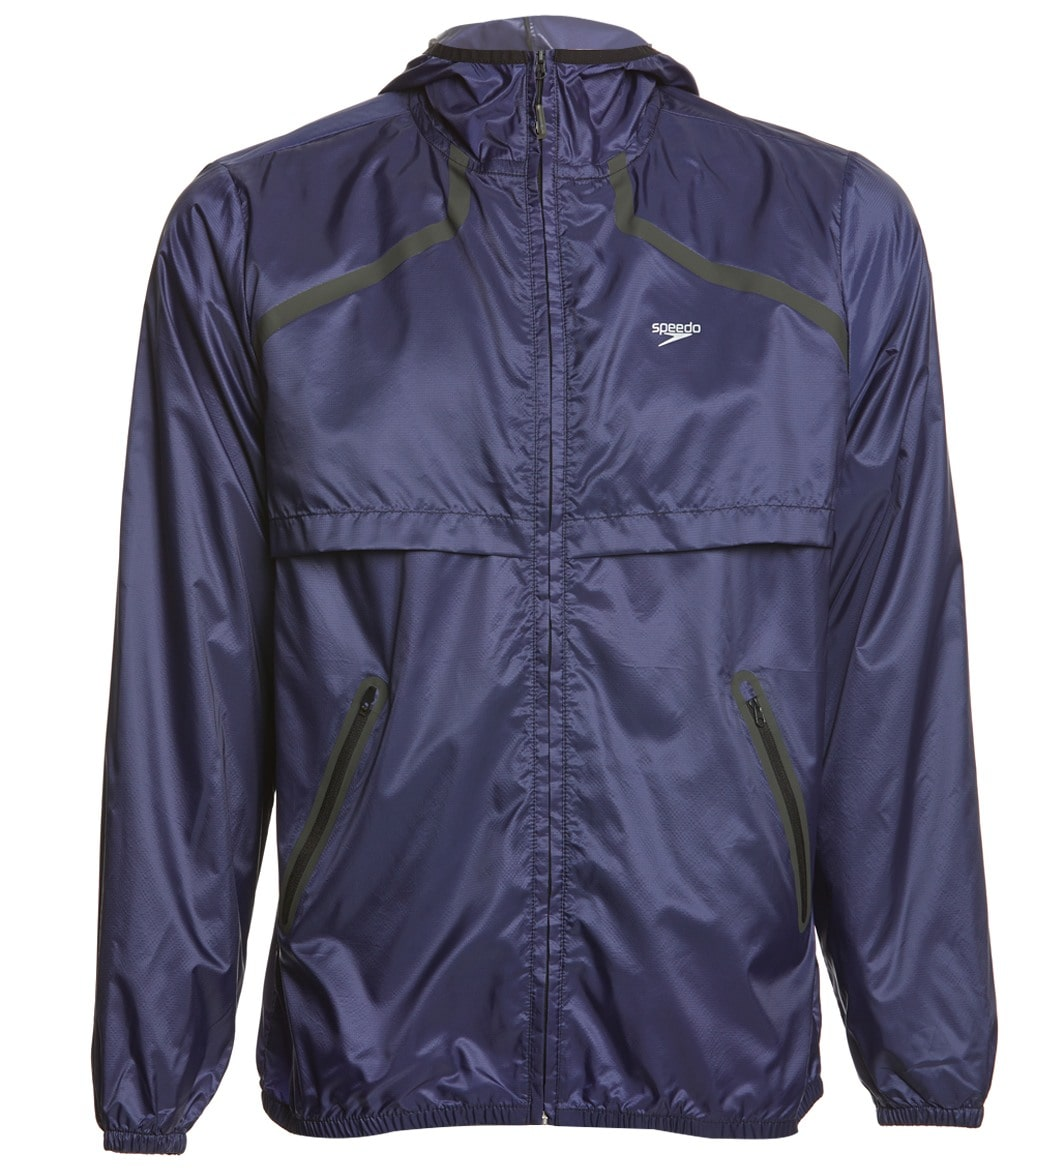 798463009962f Speedo Men's Light Weight Woven Jacket at SwimOutlet.com - Free Shipping